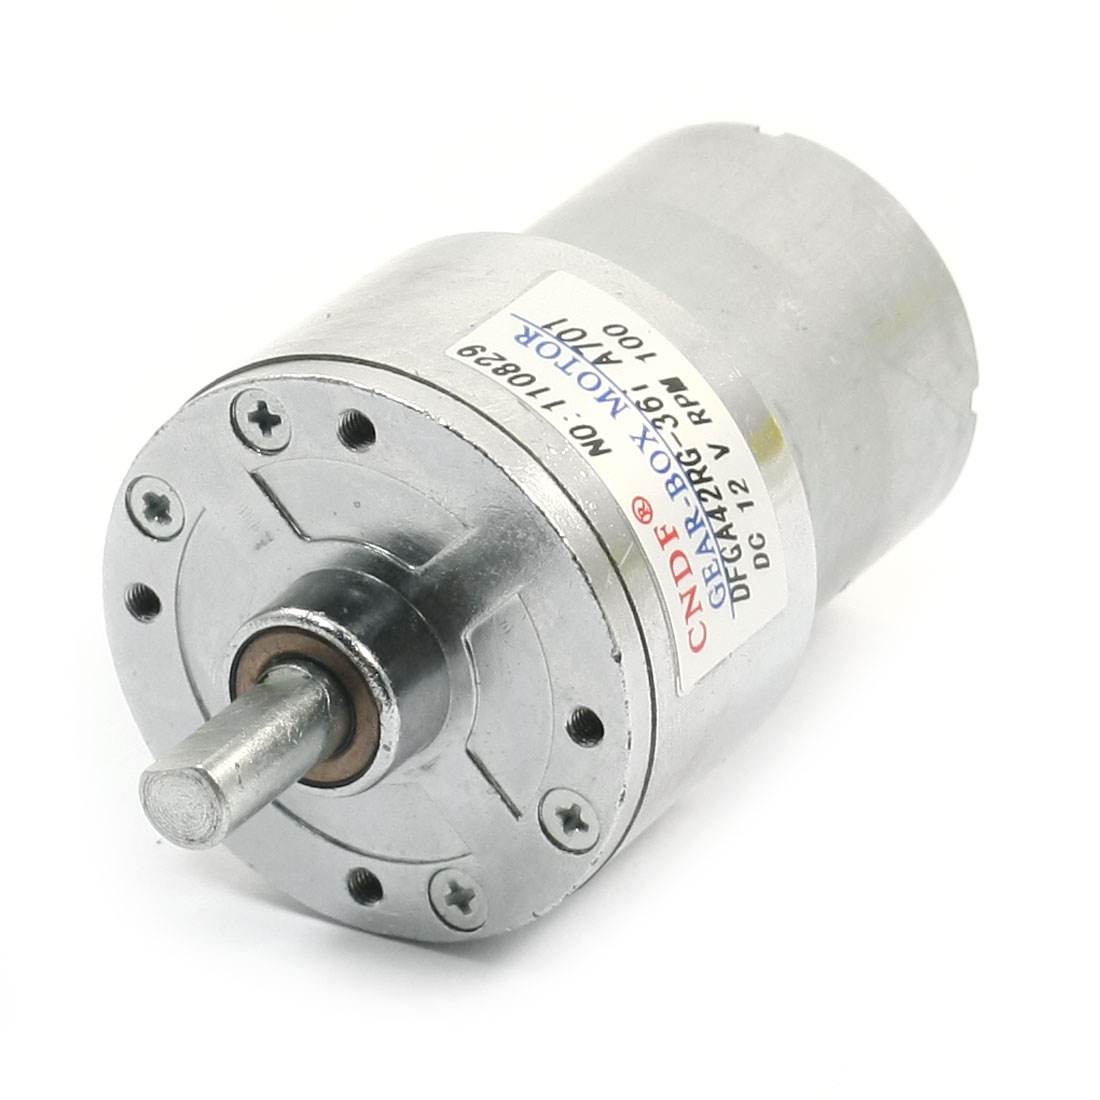 DC12V 0.052A No-load 100RPM 15 x 7mm Shaft 78mm Long Gearbox Motor